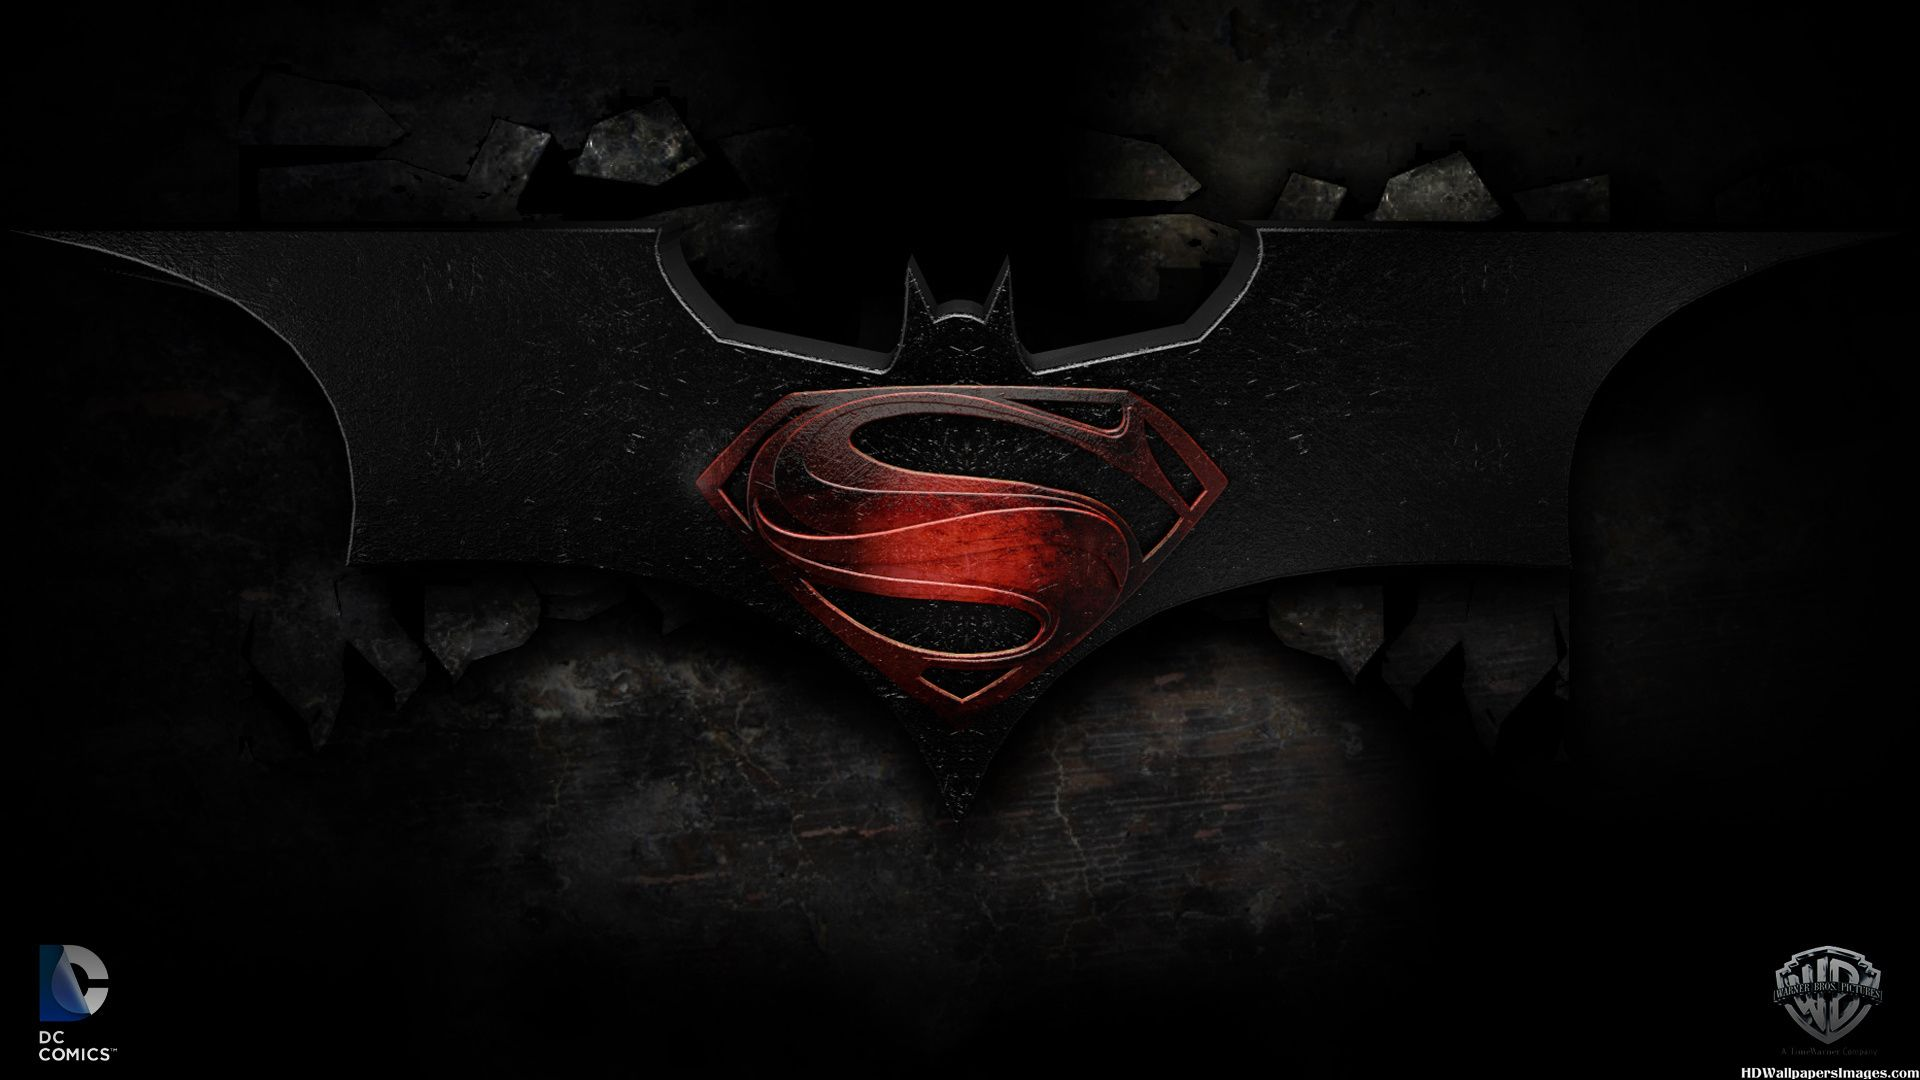 fonds d'écran batman v superman : tous les wallpapers batman v